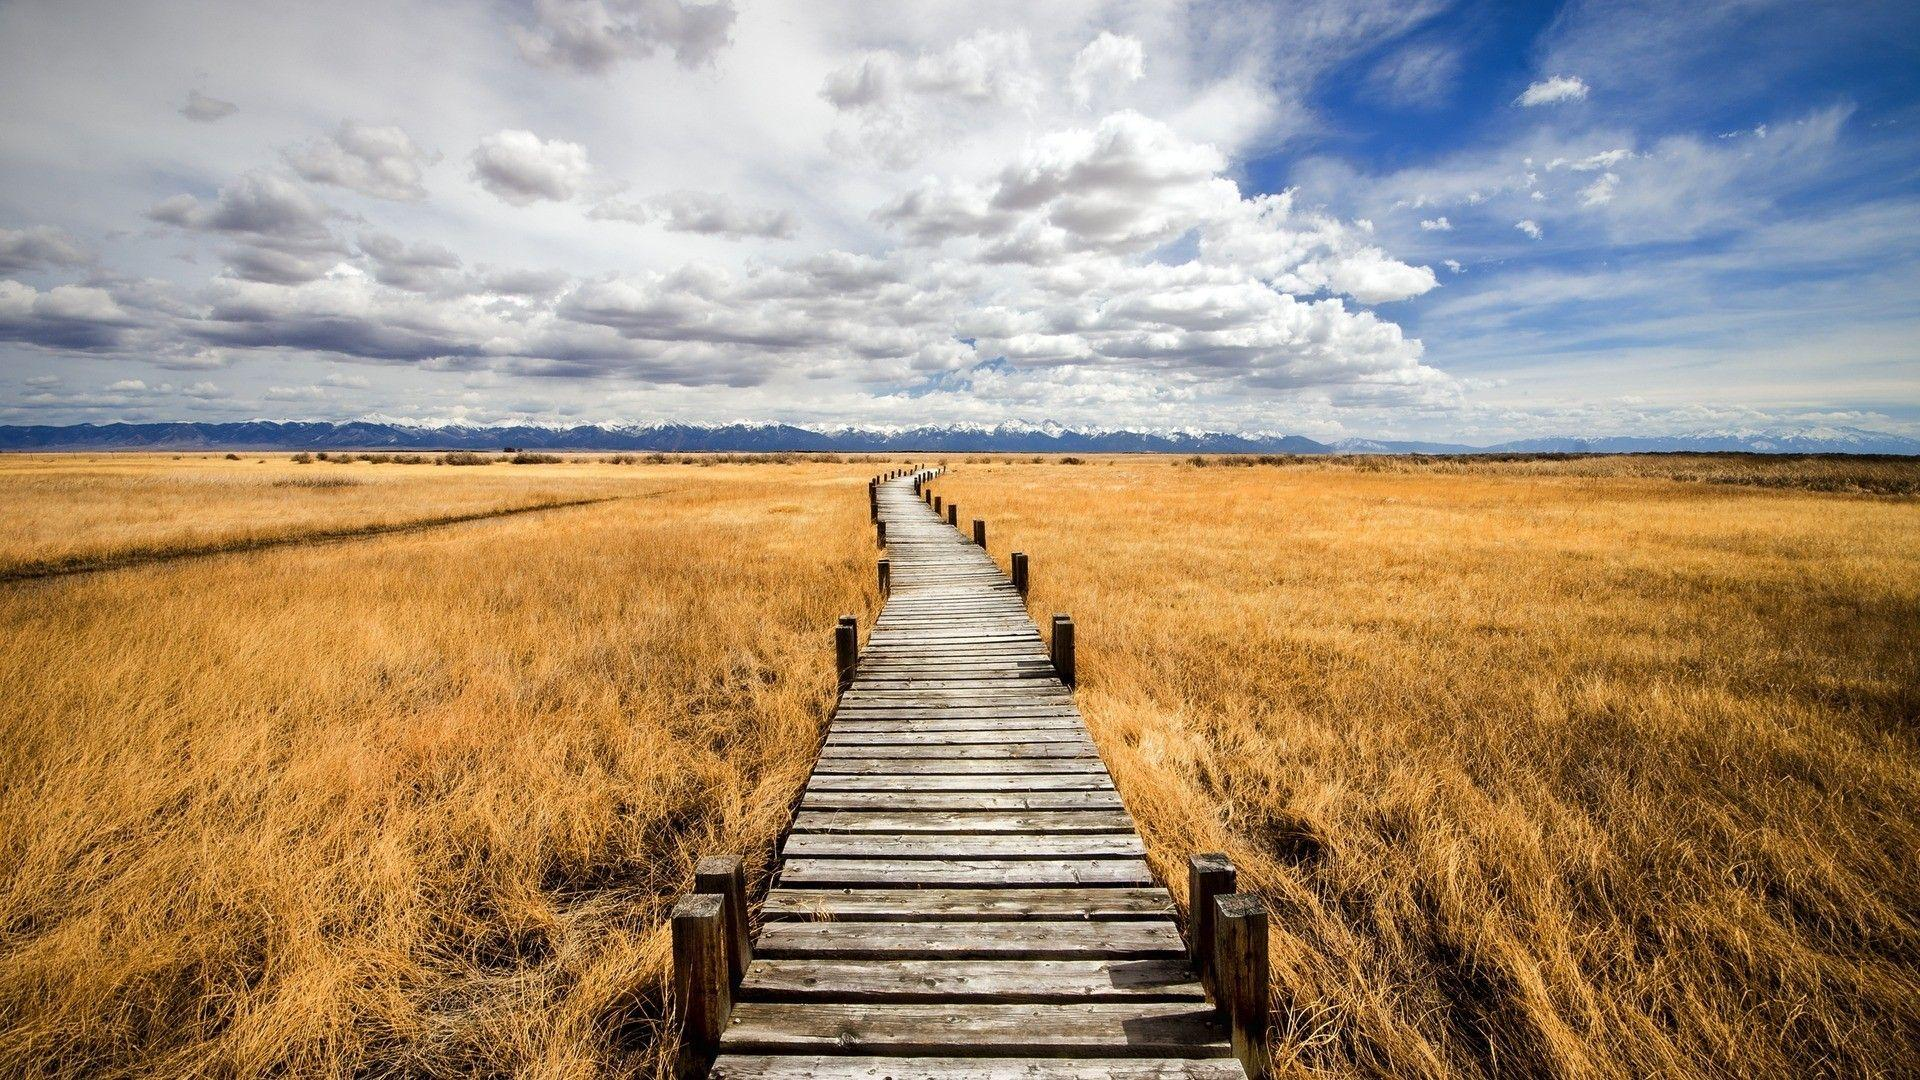 Boardwalk on grassy wetlands the prairie wallpaper | AllWallpaper ...